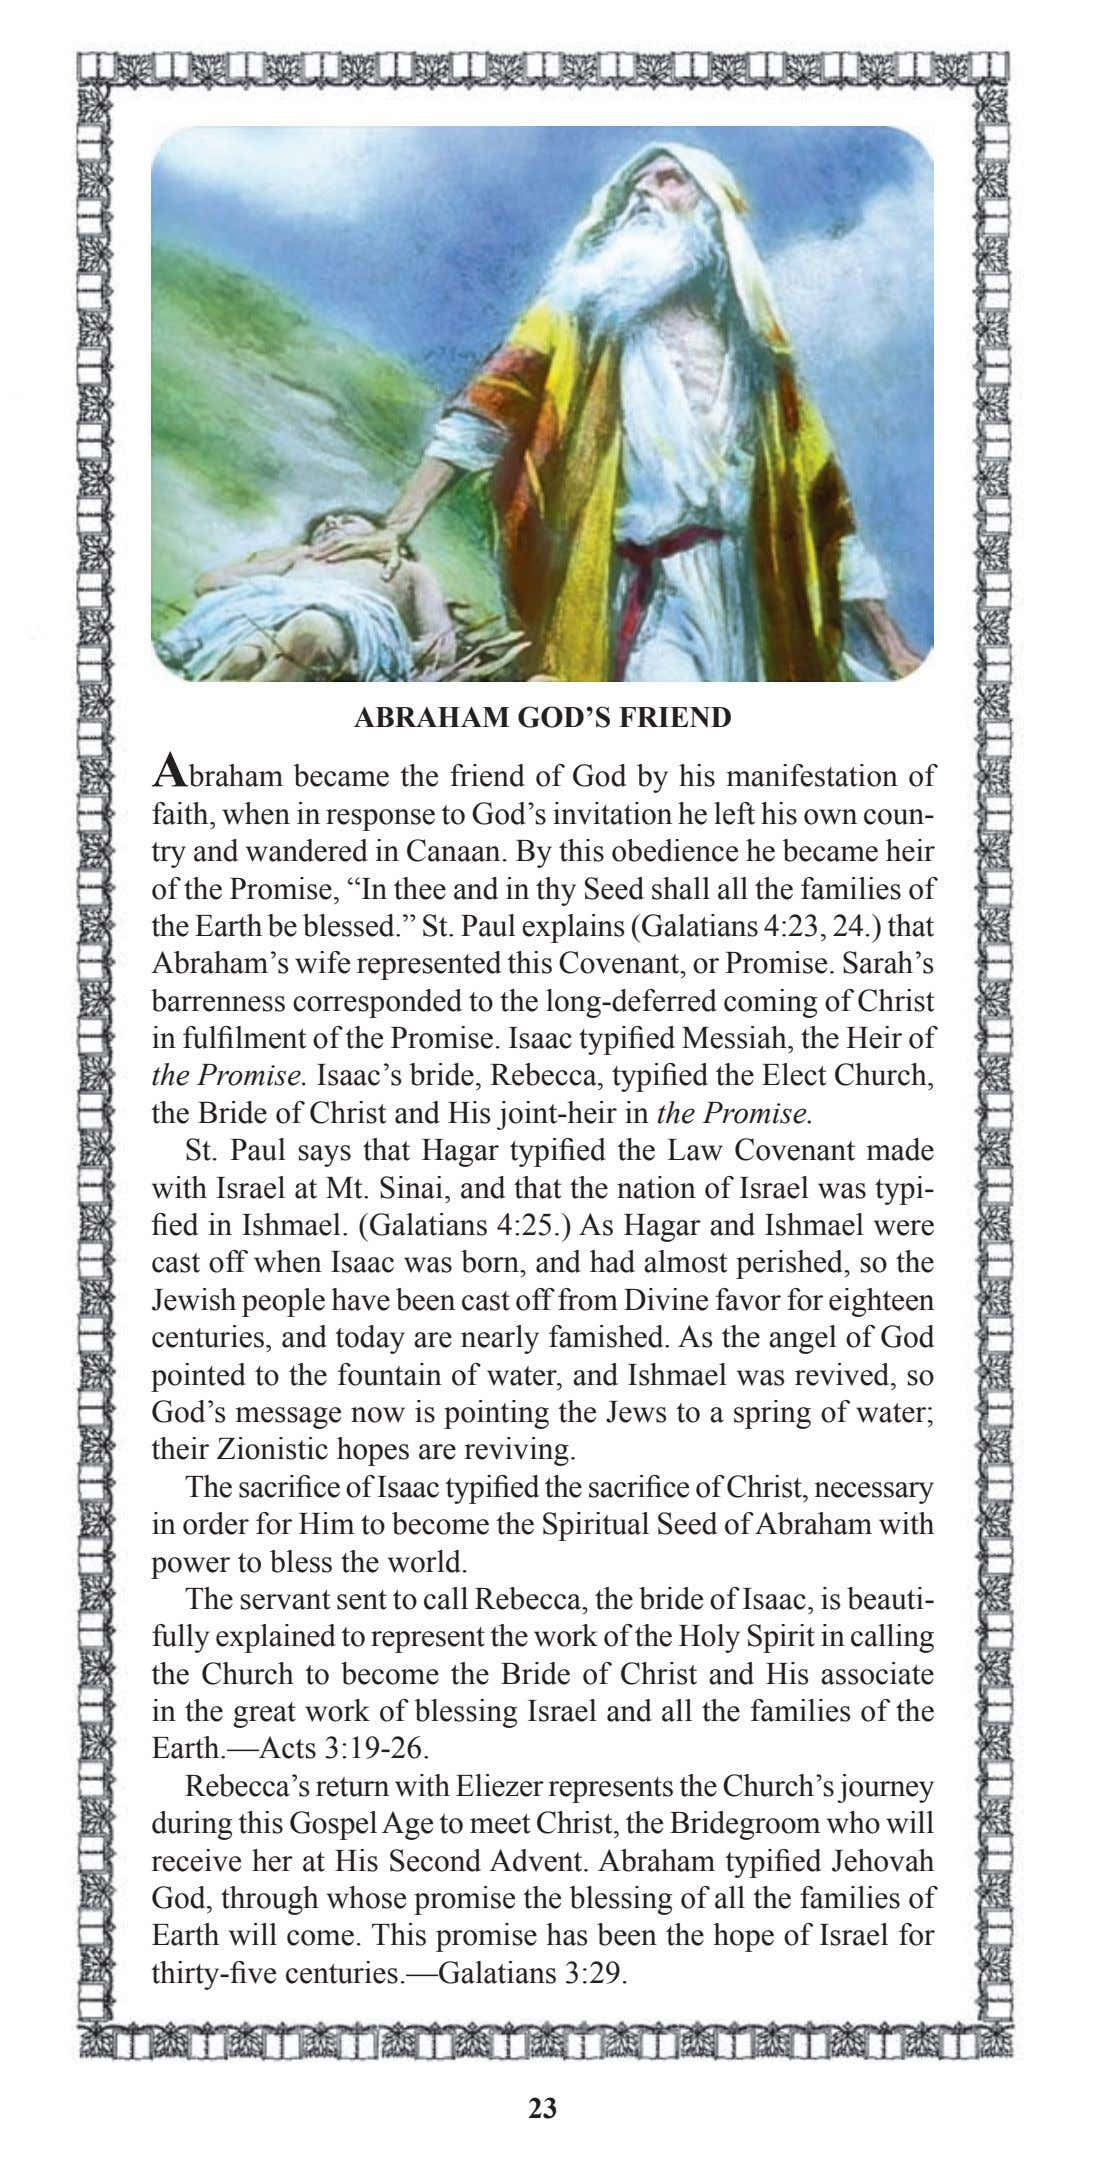 ABRAHAM GOD'S FRIEND Abraham became the friend of God by his manifestation of faith, when